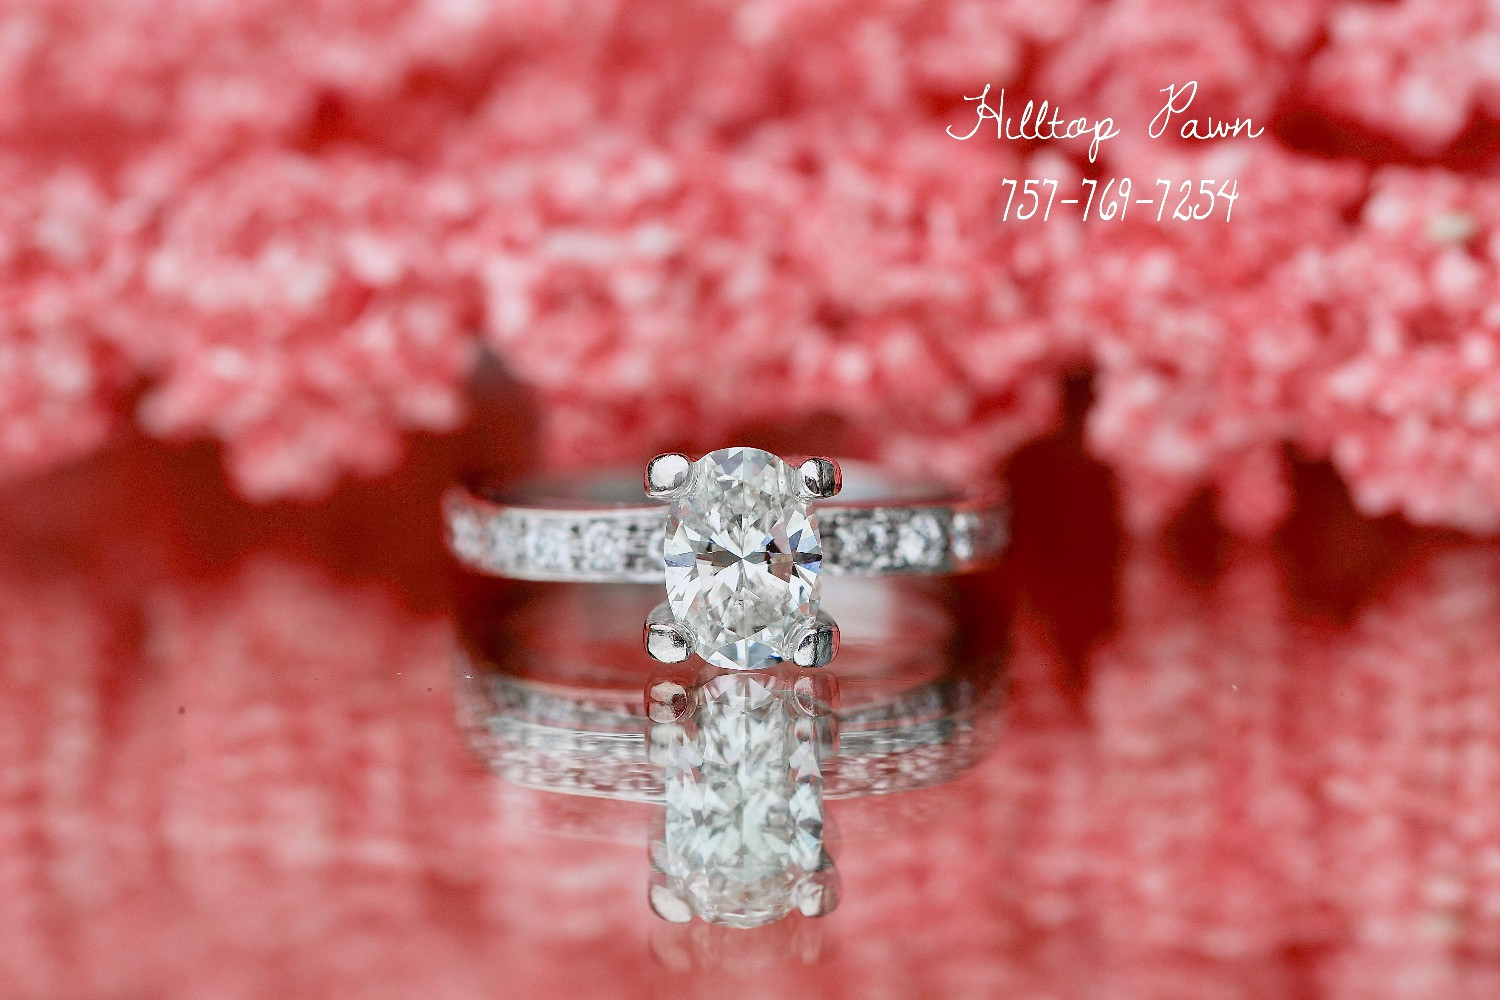 cheap diamond rings virginia beach, cheap diamond engagement rings ...